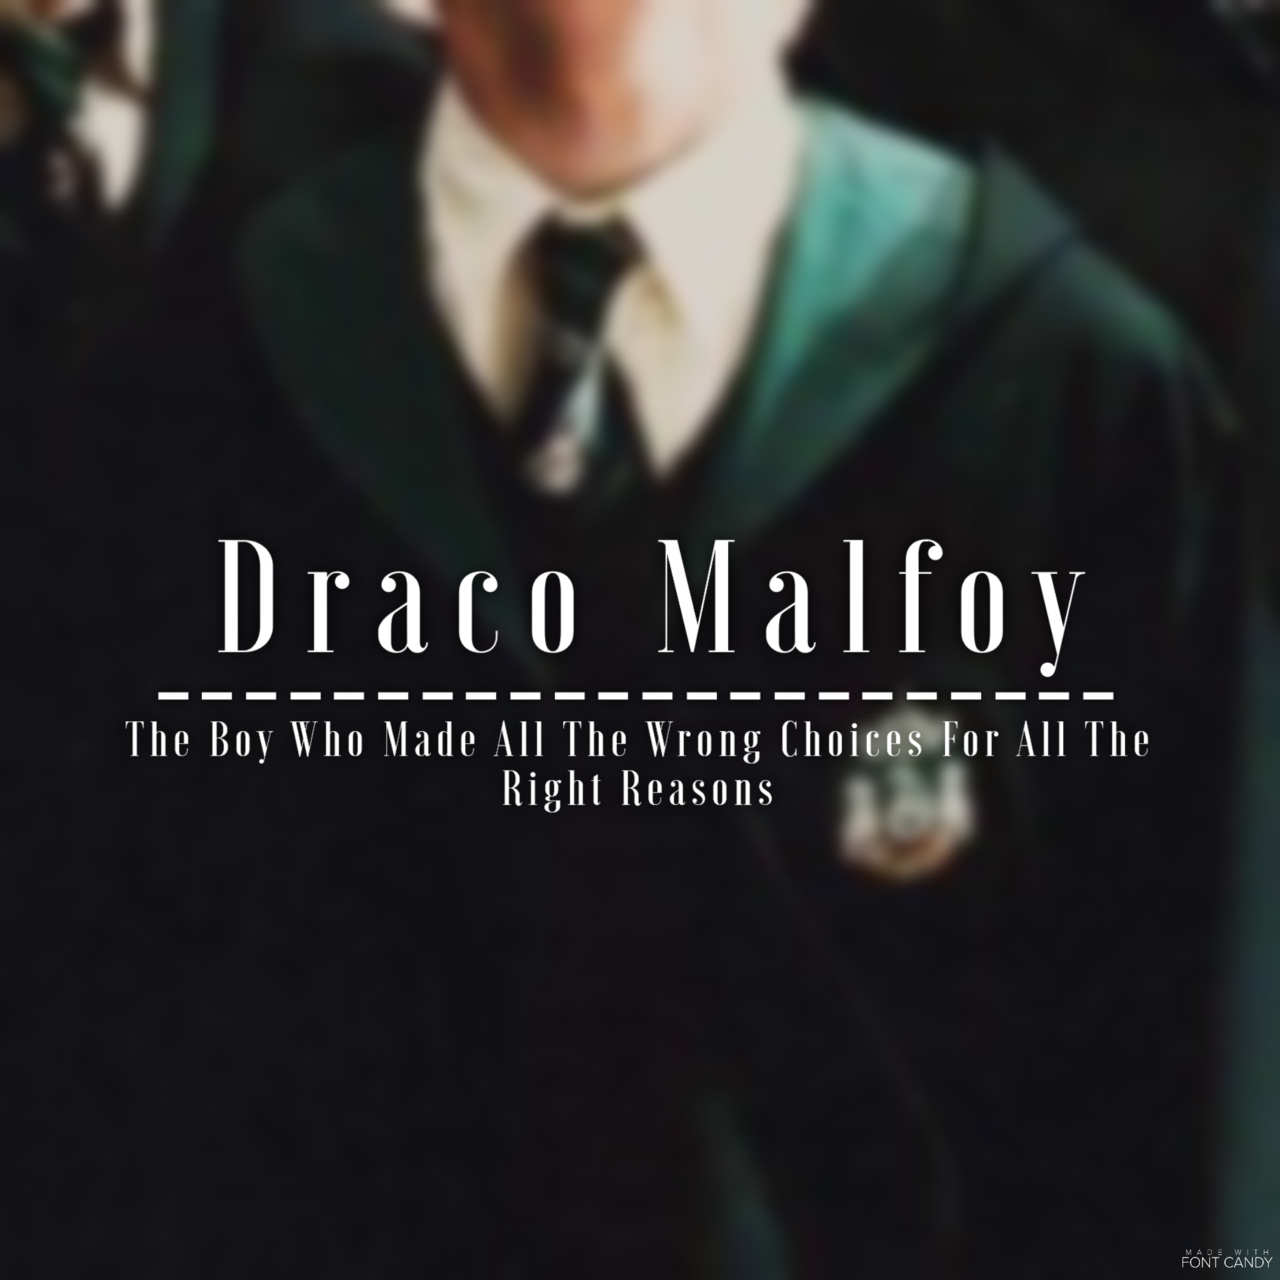 65 Images About Draco Malfoy On We Heart It See More About Harry Potter Draco Malfoy And Tom Felton